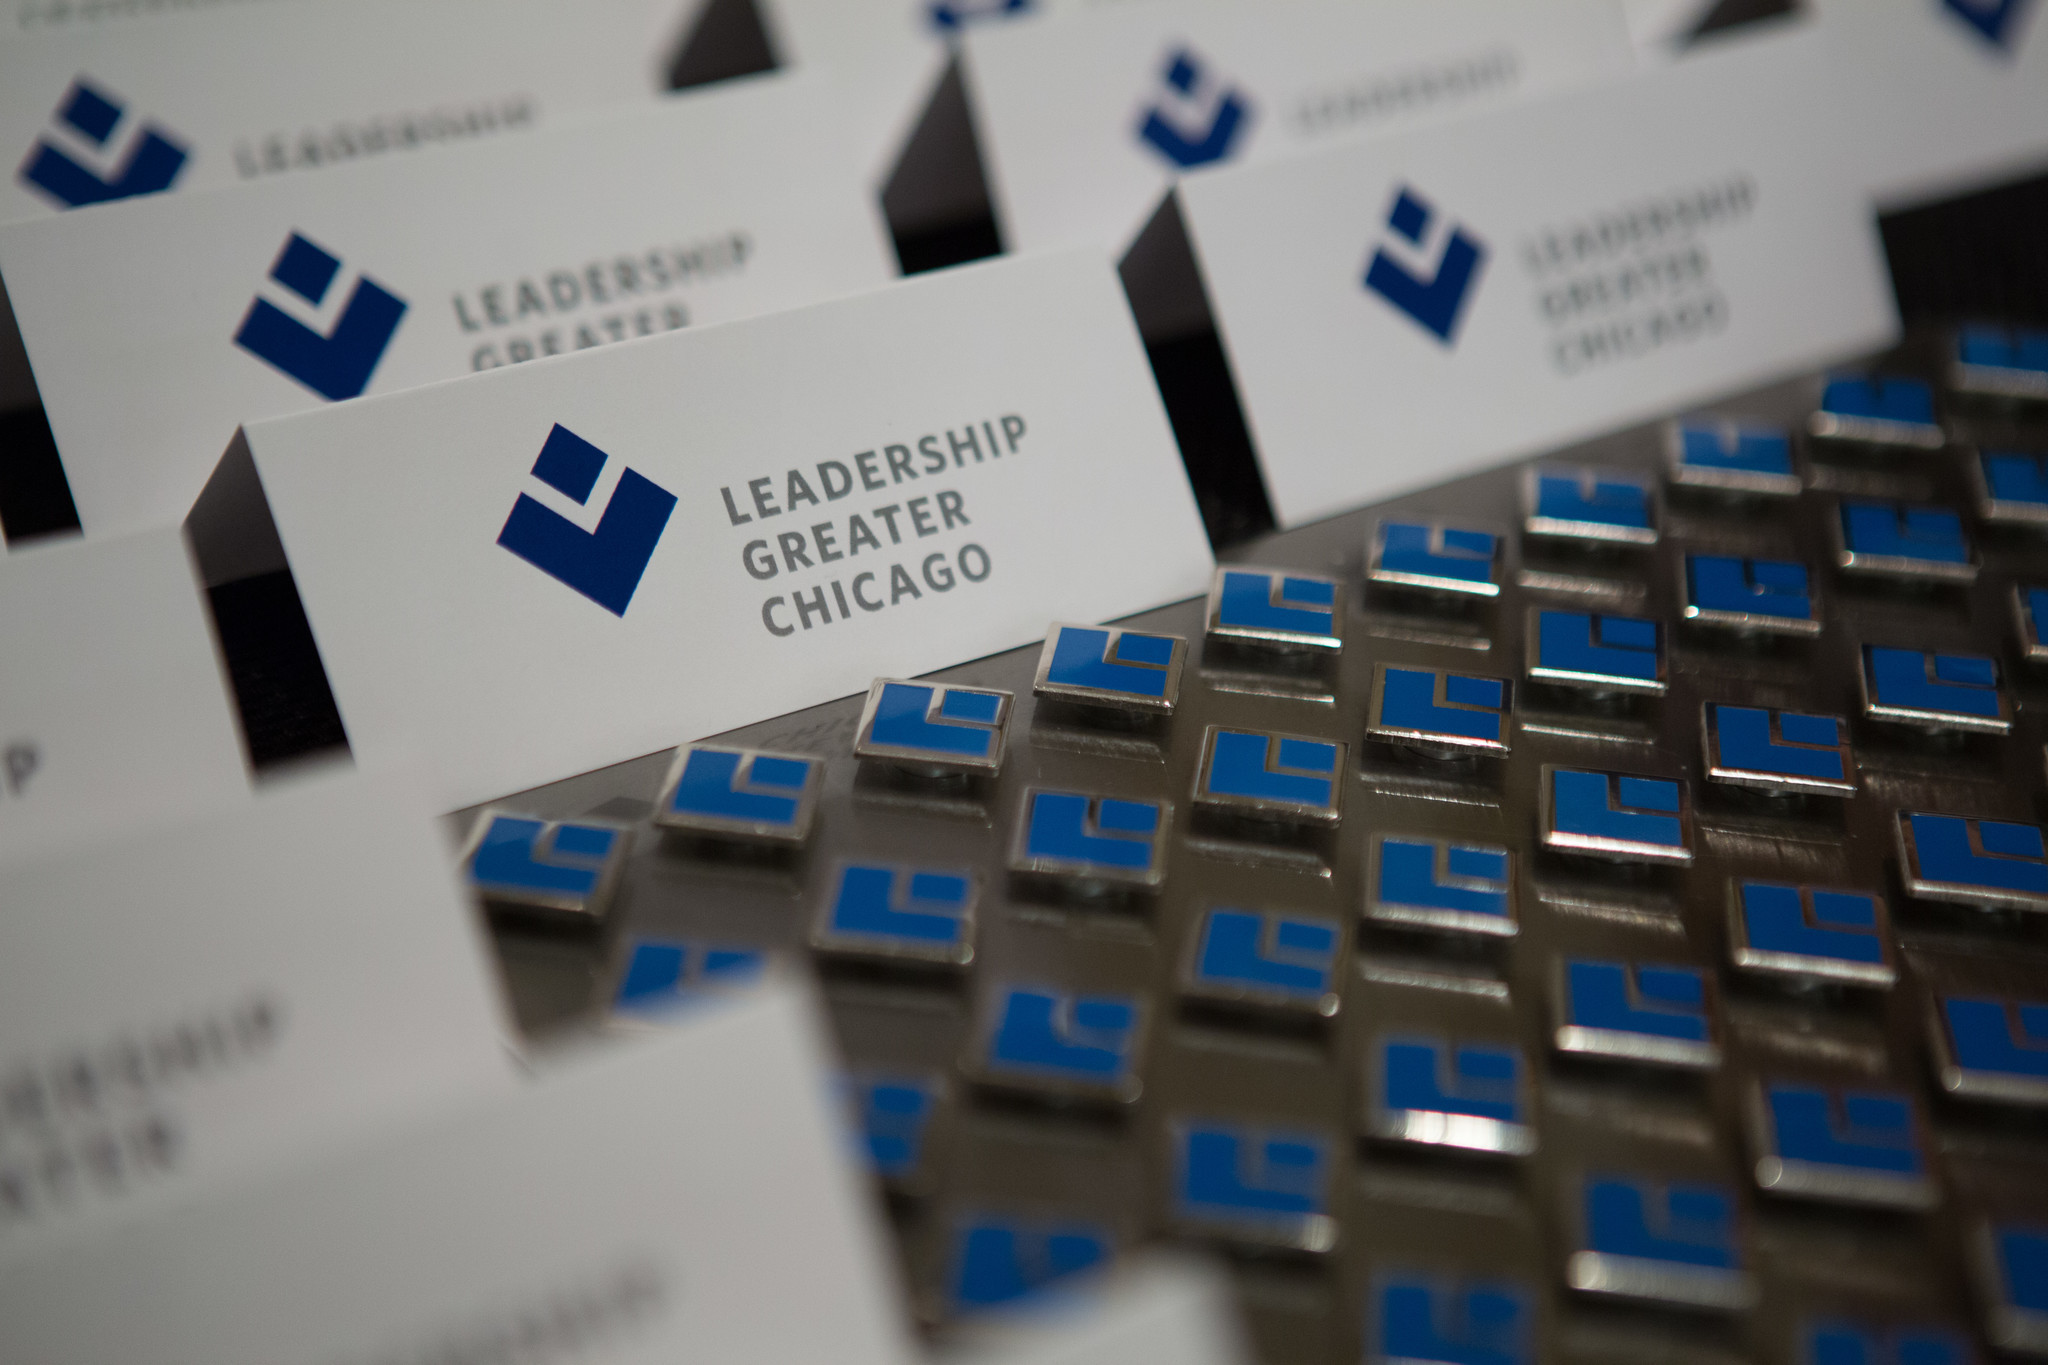 Nancy Maldonado Selected for Leadership Greater Chicago